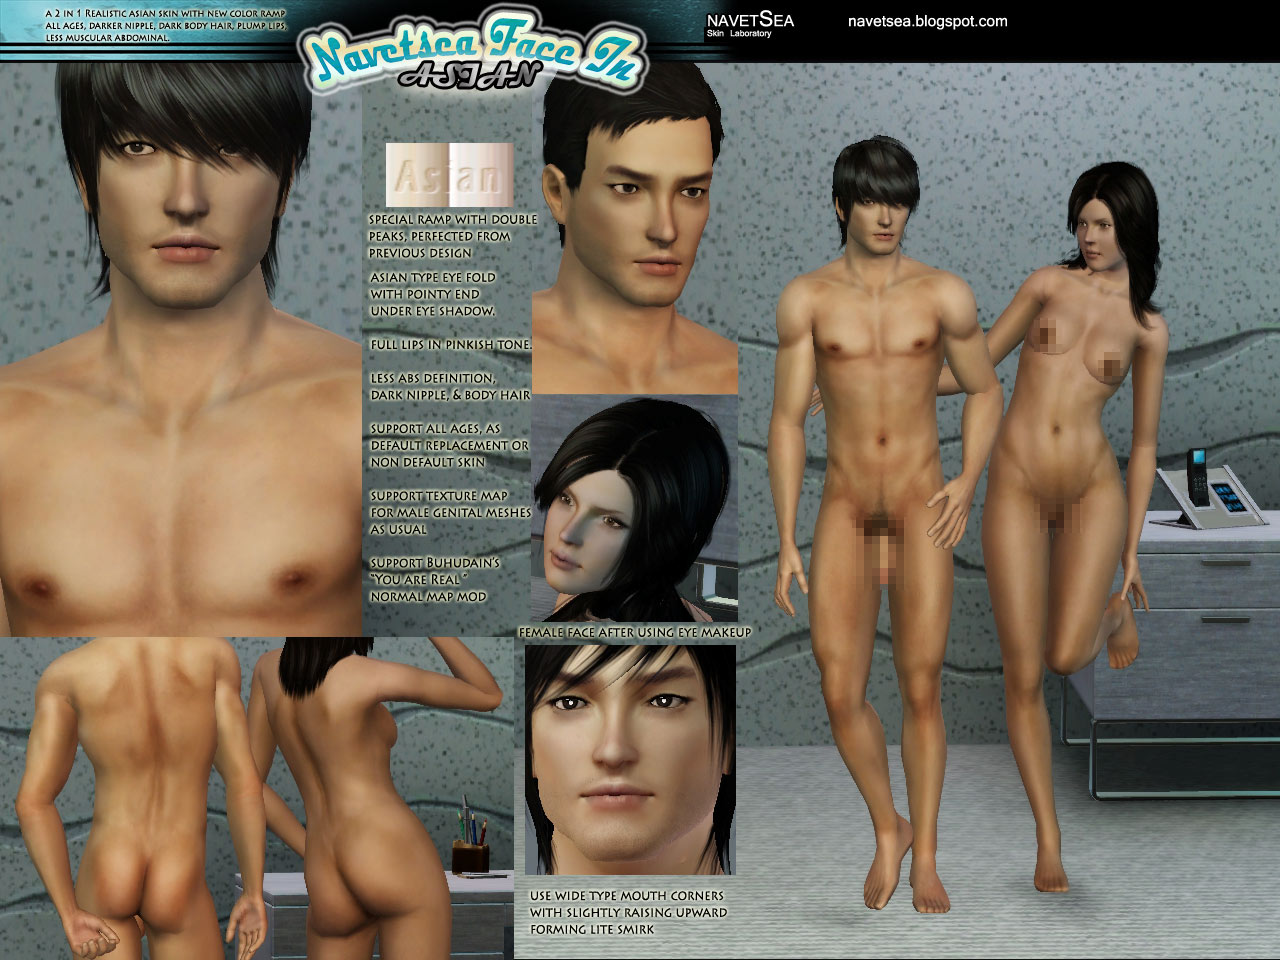 The sims 2 nude skins download anime scenes